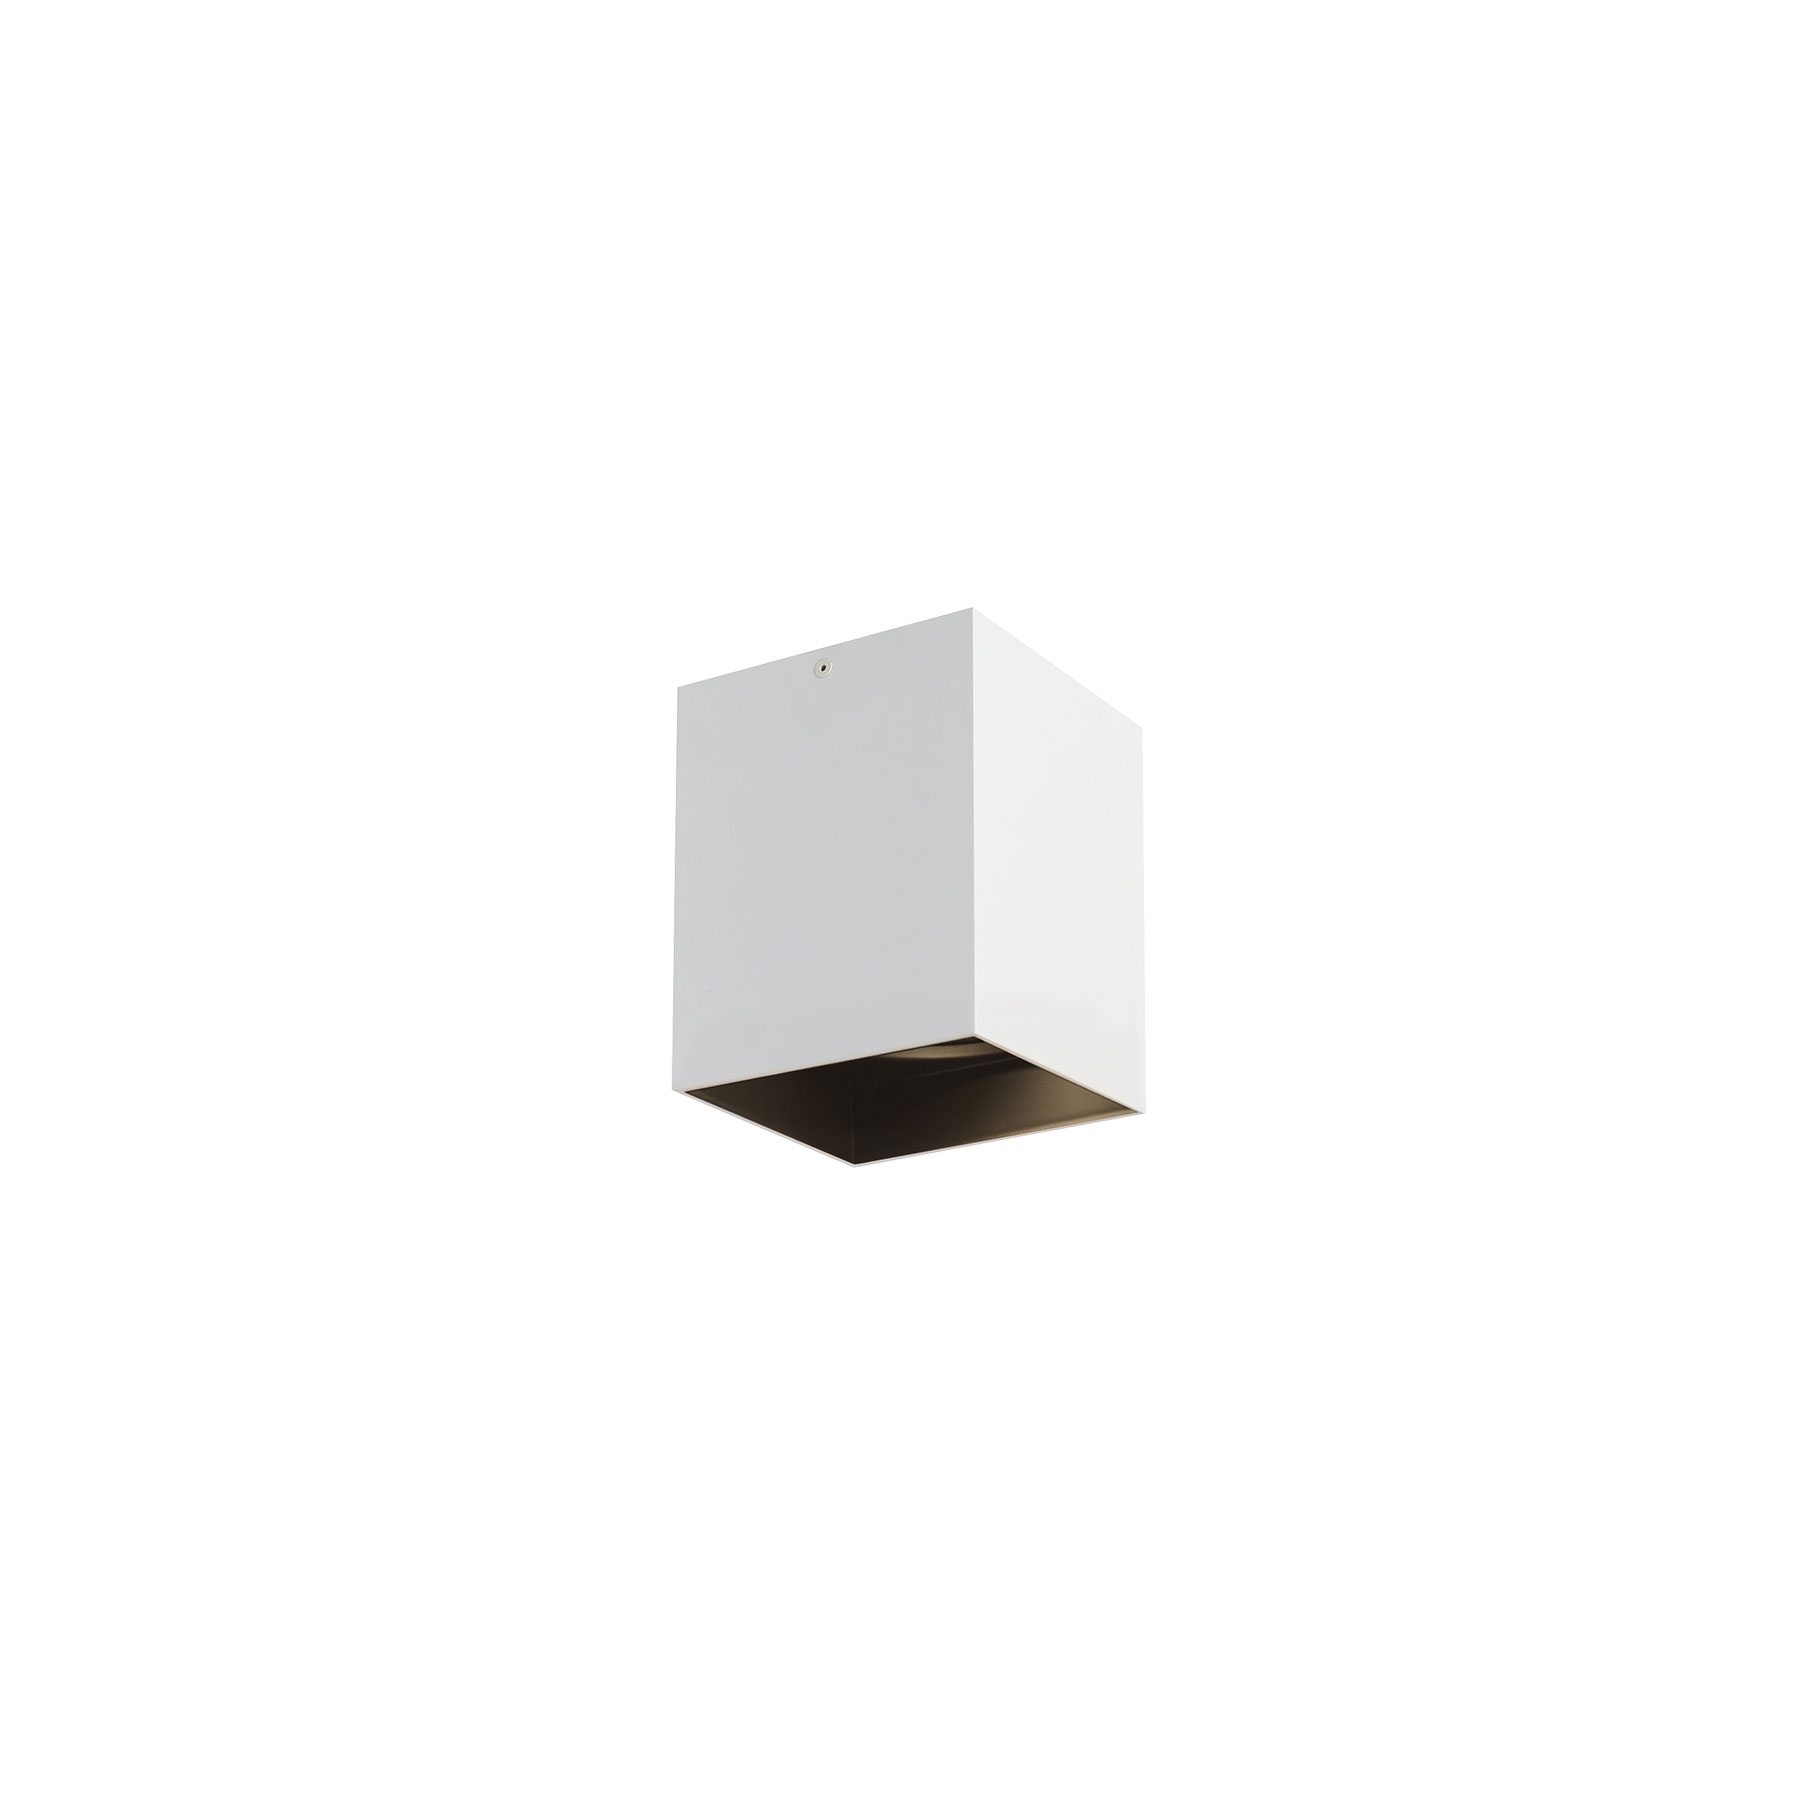 Exo 30 Deg Ceiling Light